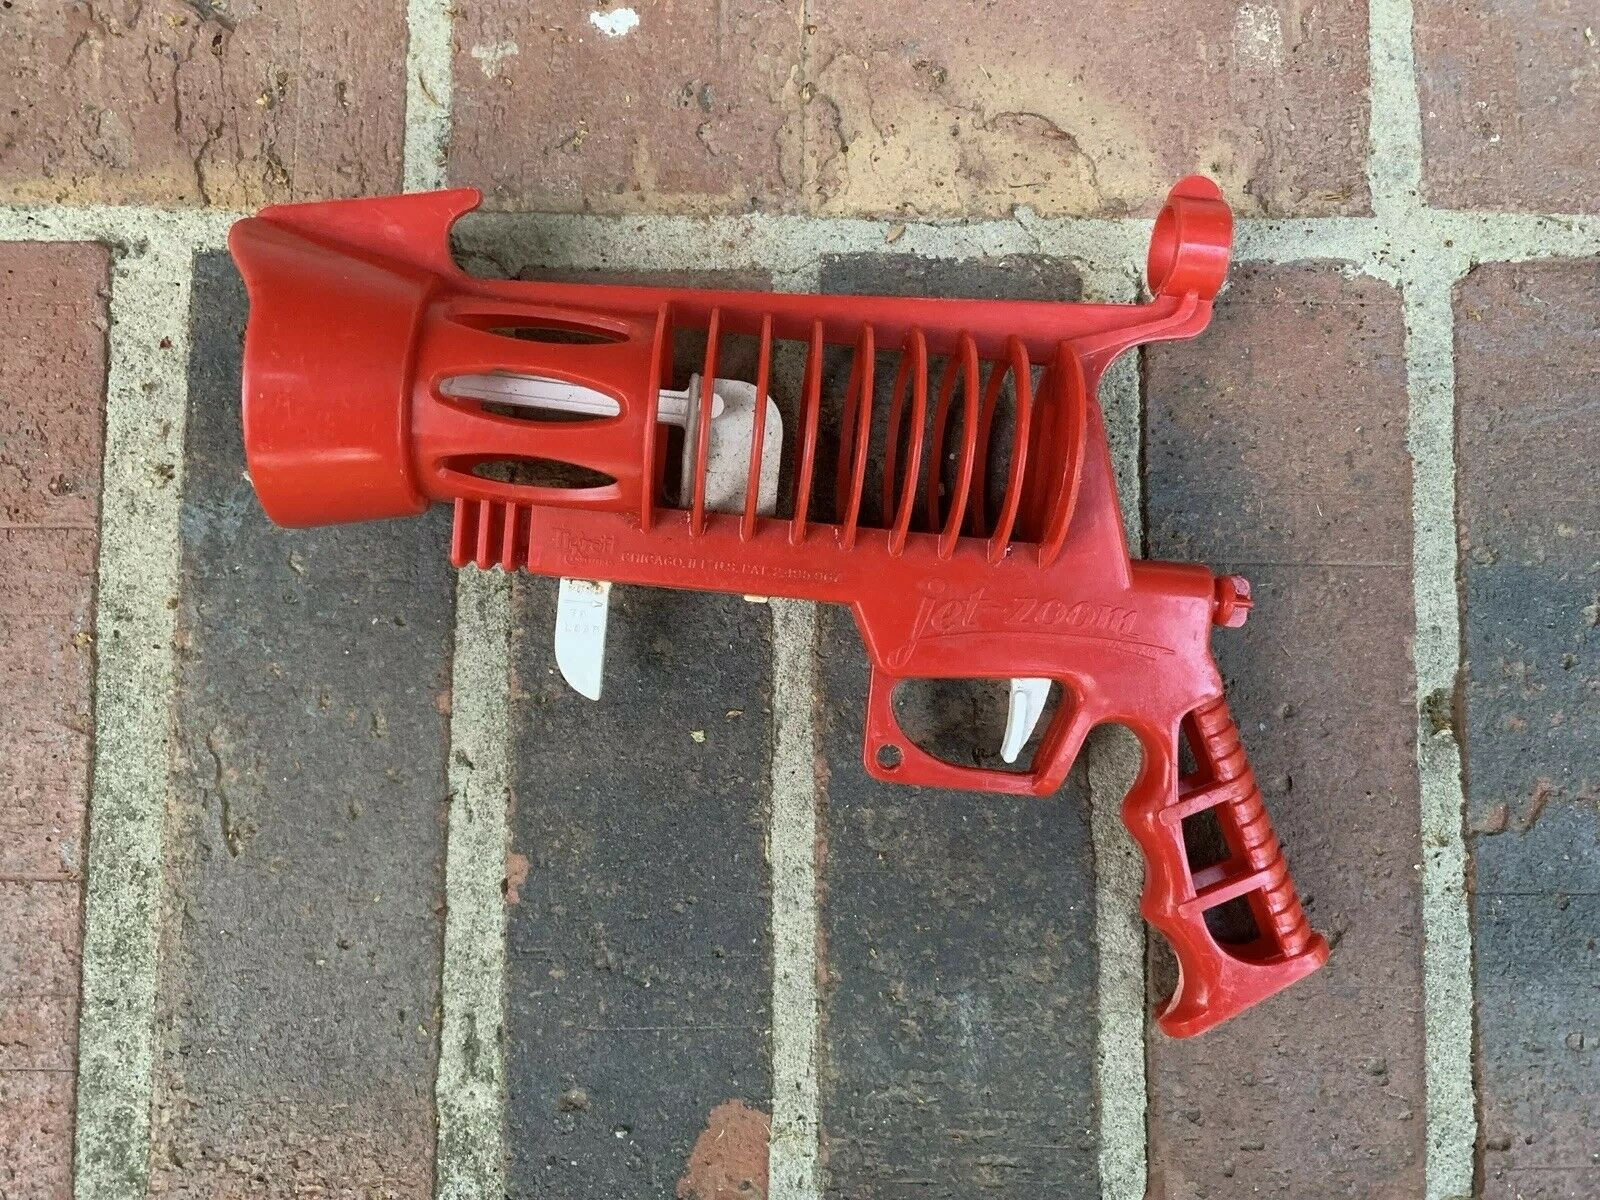 TIGRETT 1952 JET ZOOM SPACE GUN   WORKING Vintage Toy